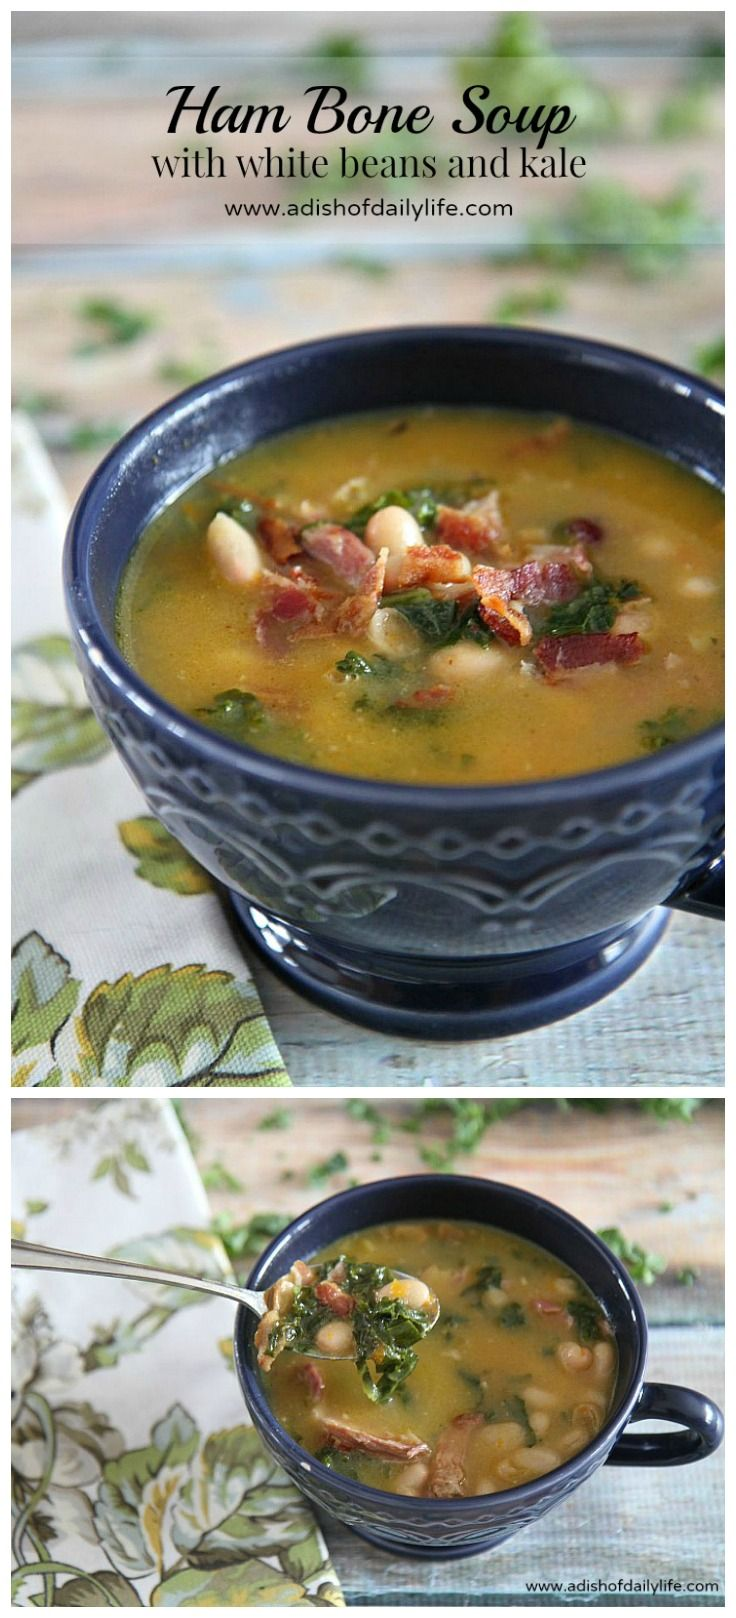 Rich in flavor, this hearty Ham Bone Soup with white beans and kale is a great way to use up a leftover ham bone. And it's the perfect comfort food to warm your bones on a rainy spring day!